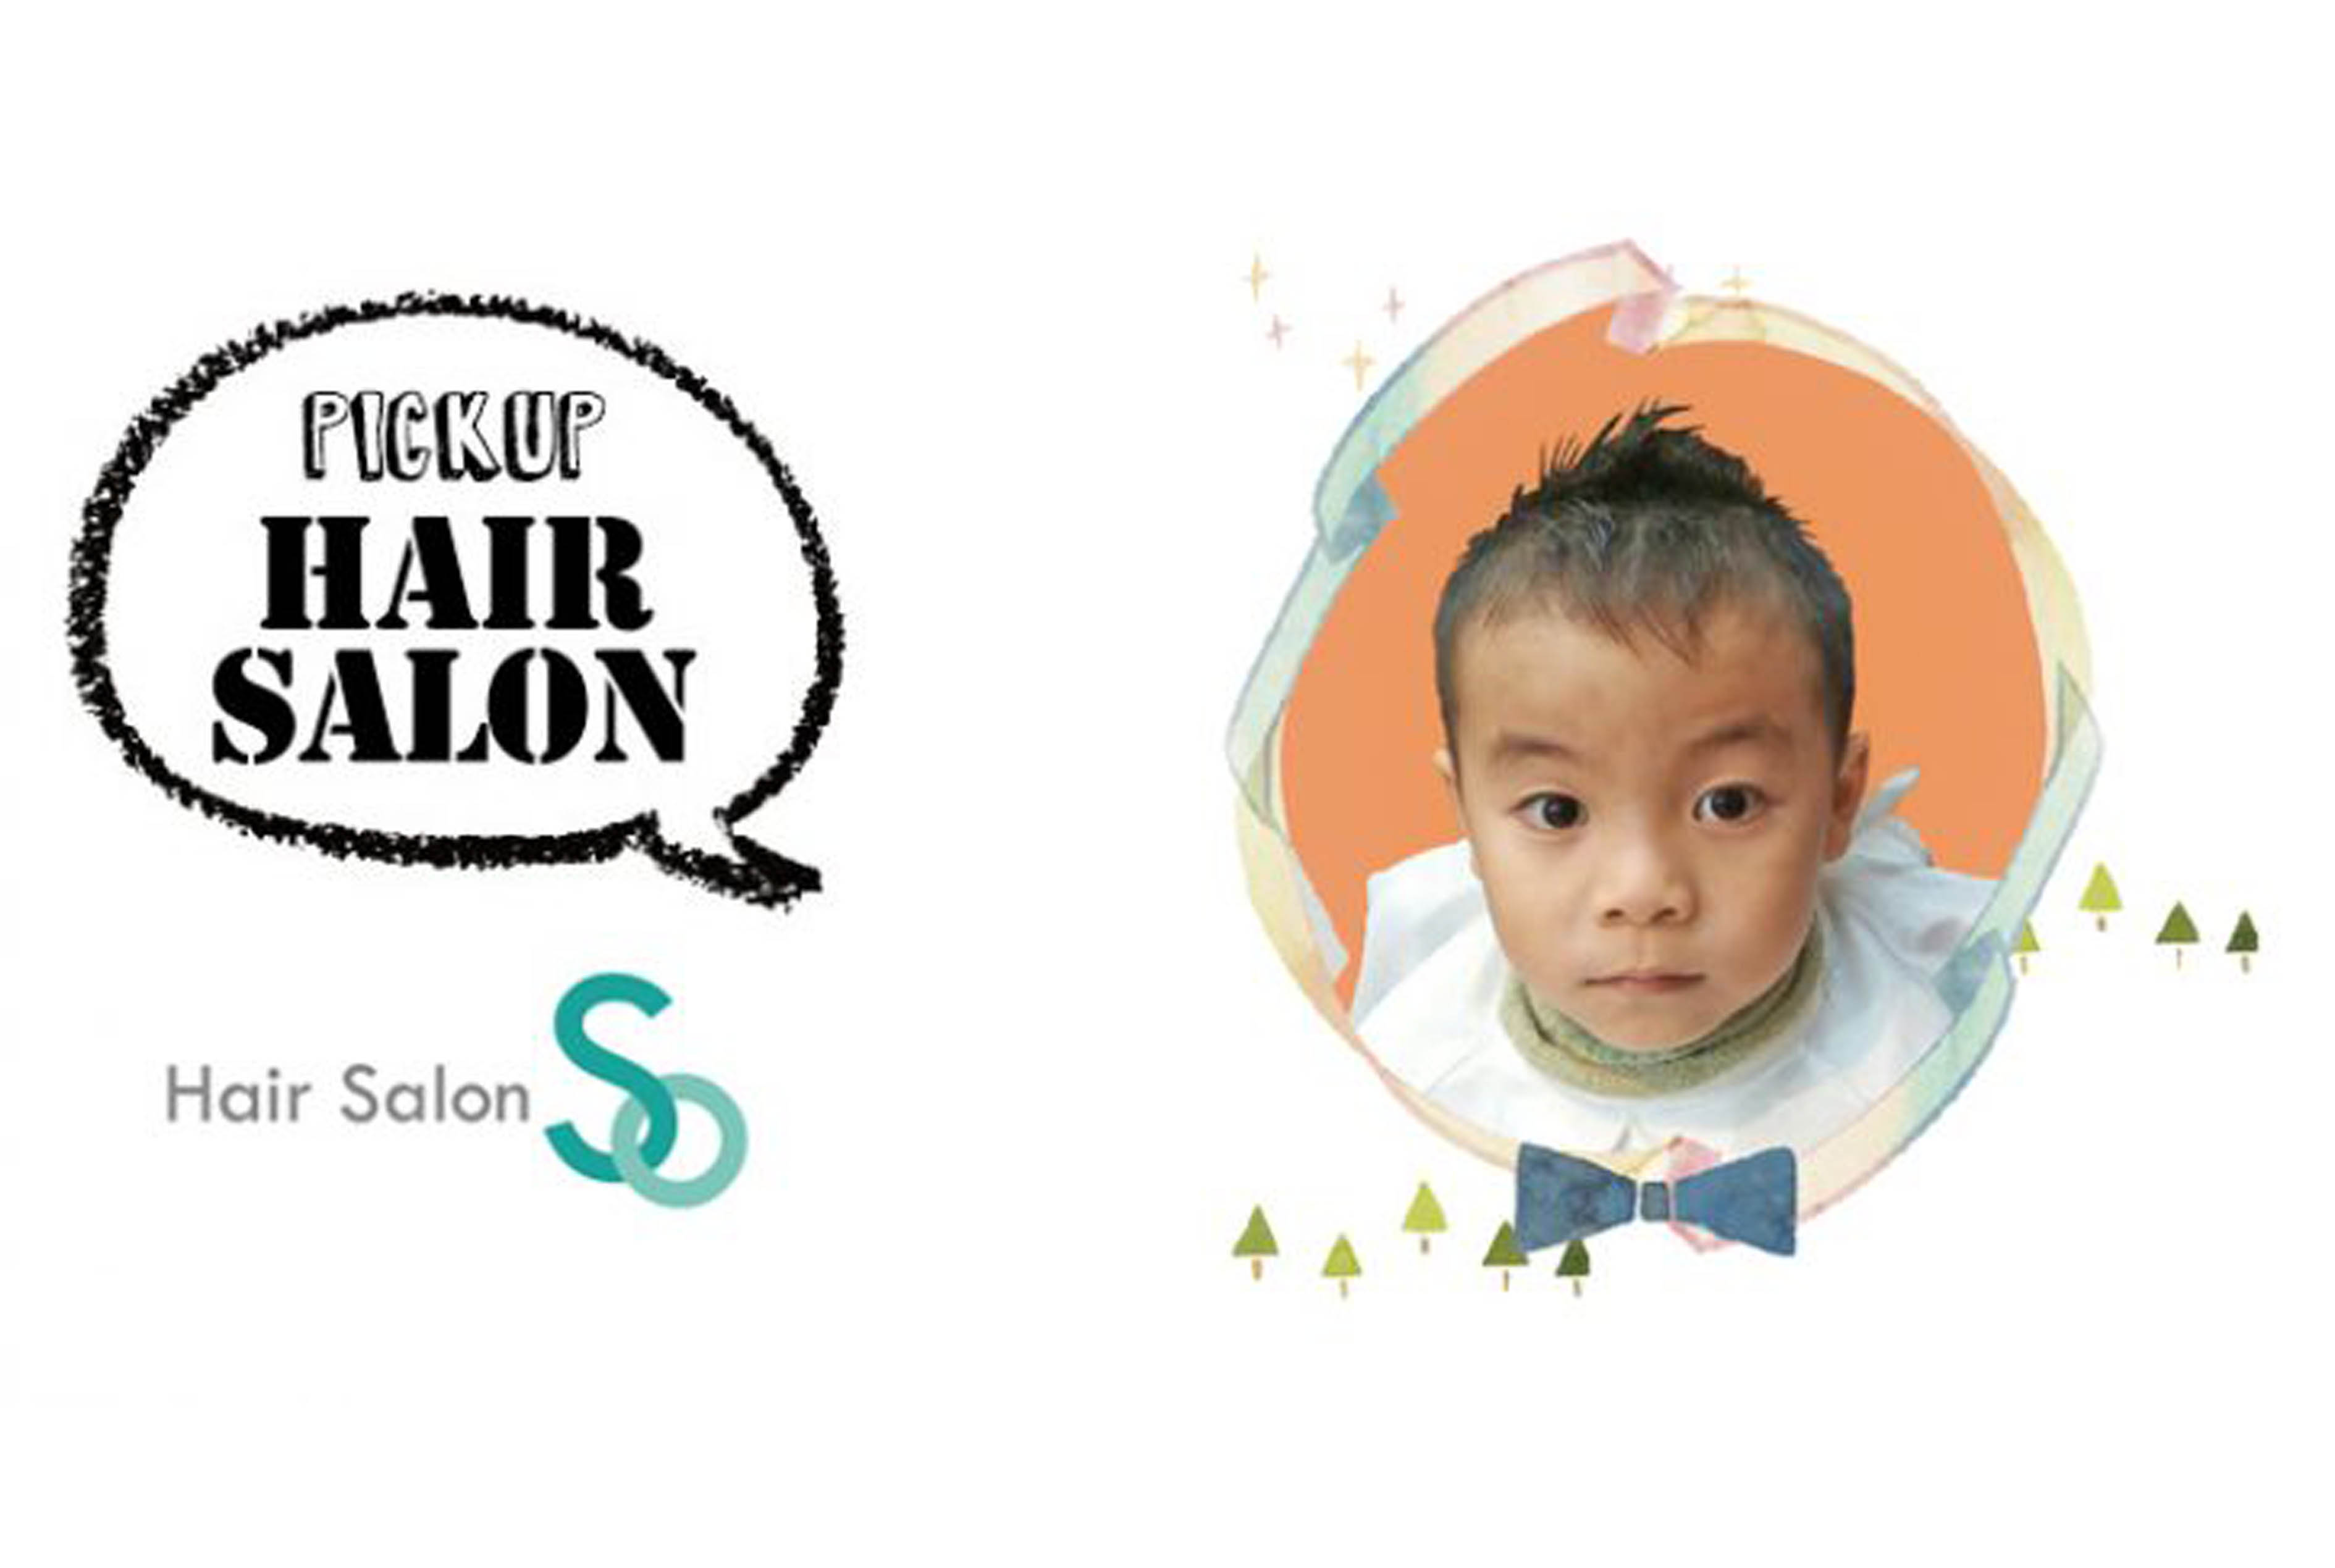 【PICK UP HAIR SALON】 Hair Salon SO